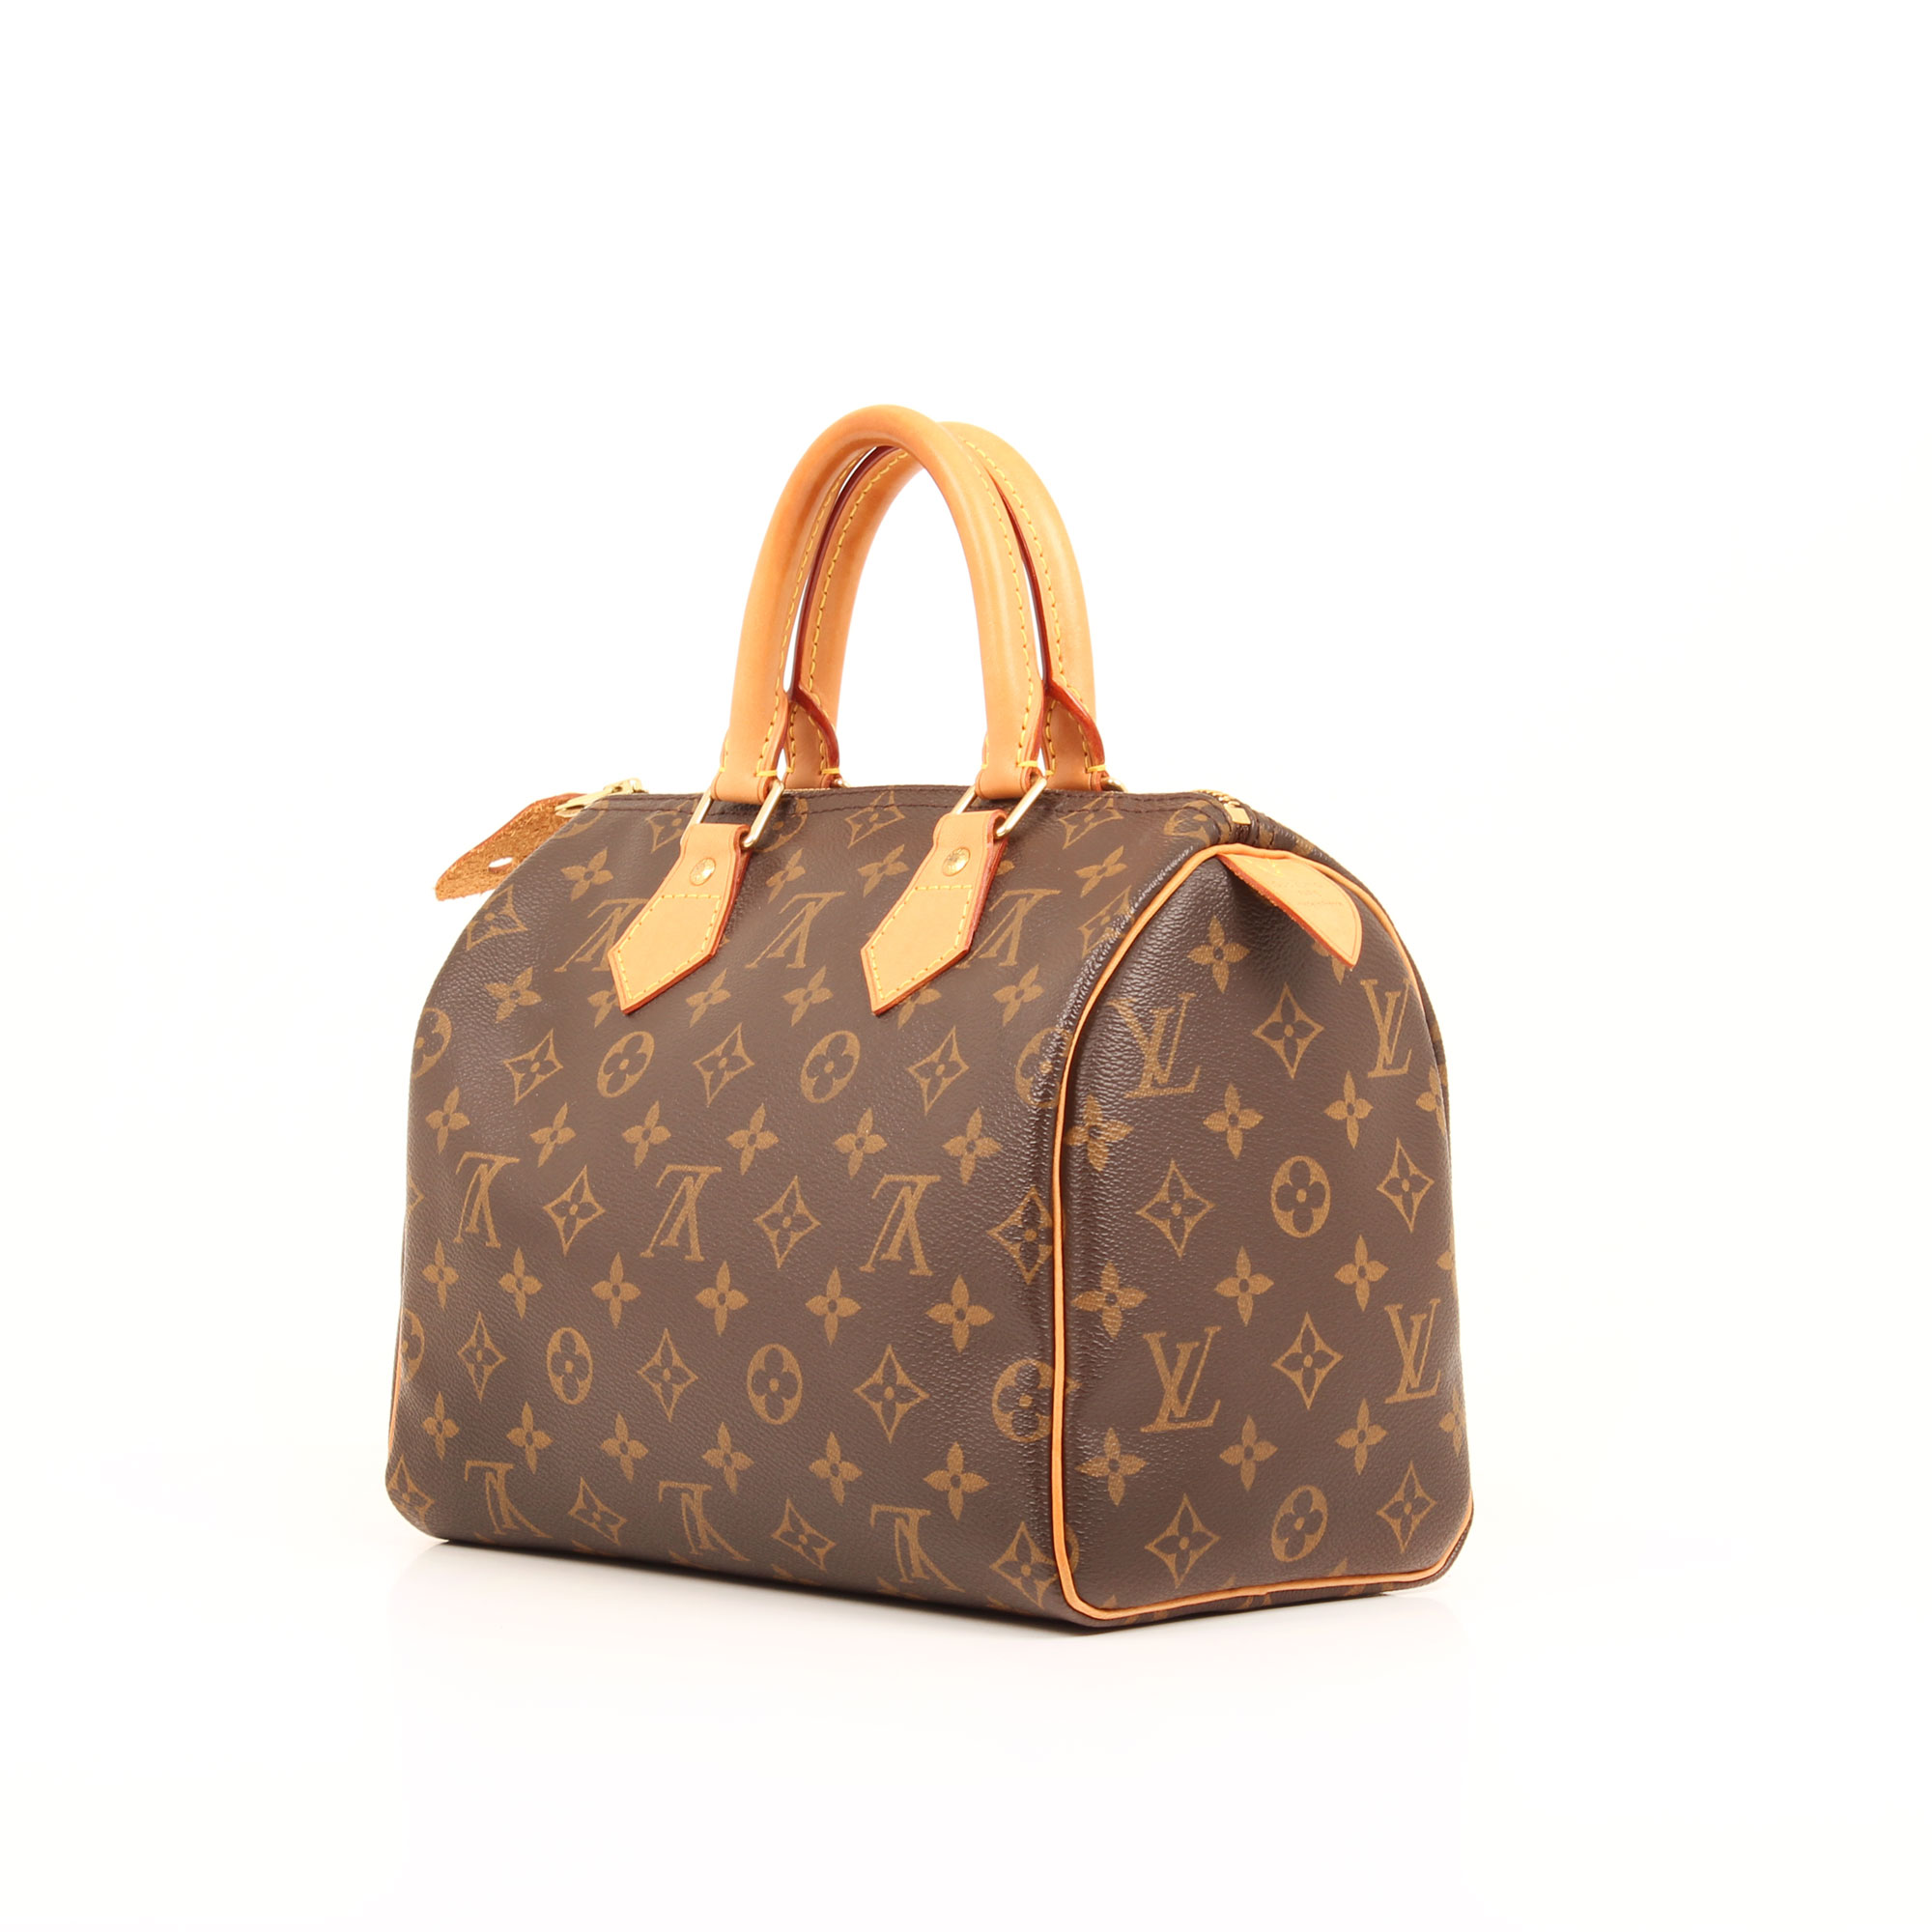 handbag louis vuitton speedy 25 monogram general